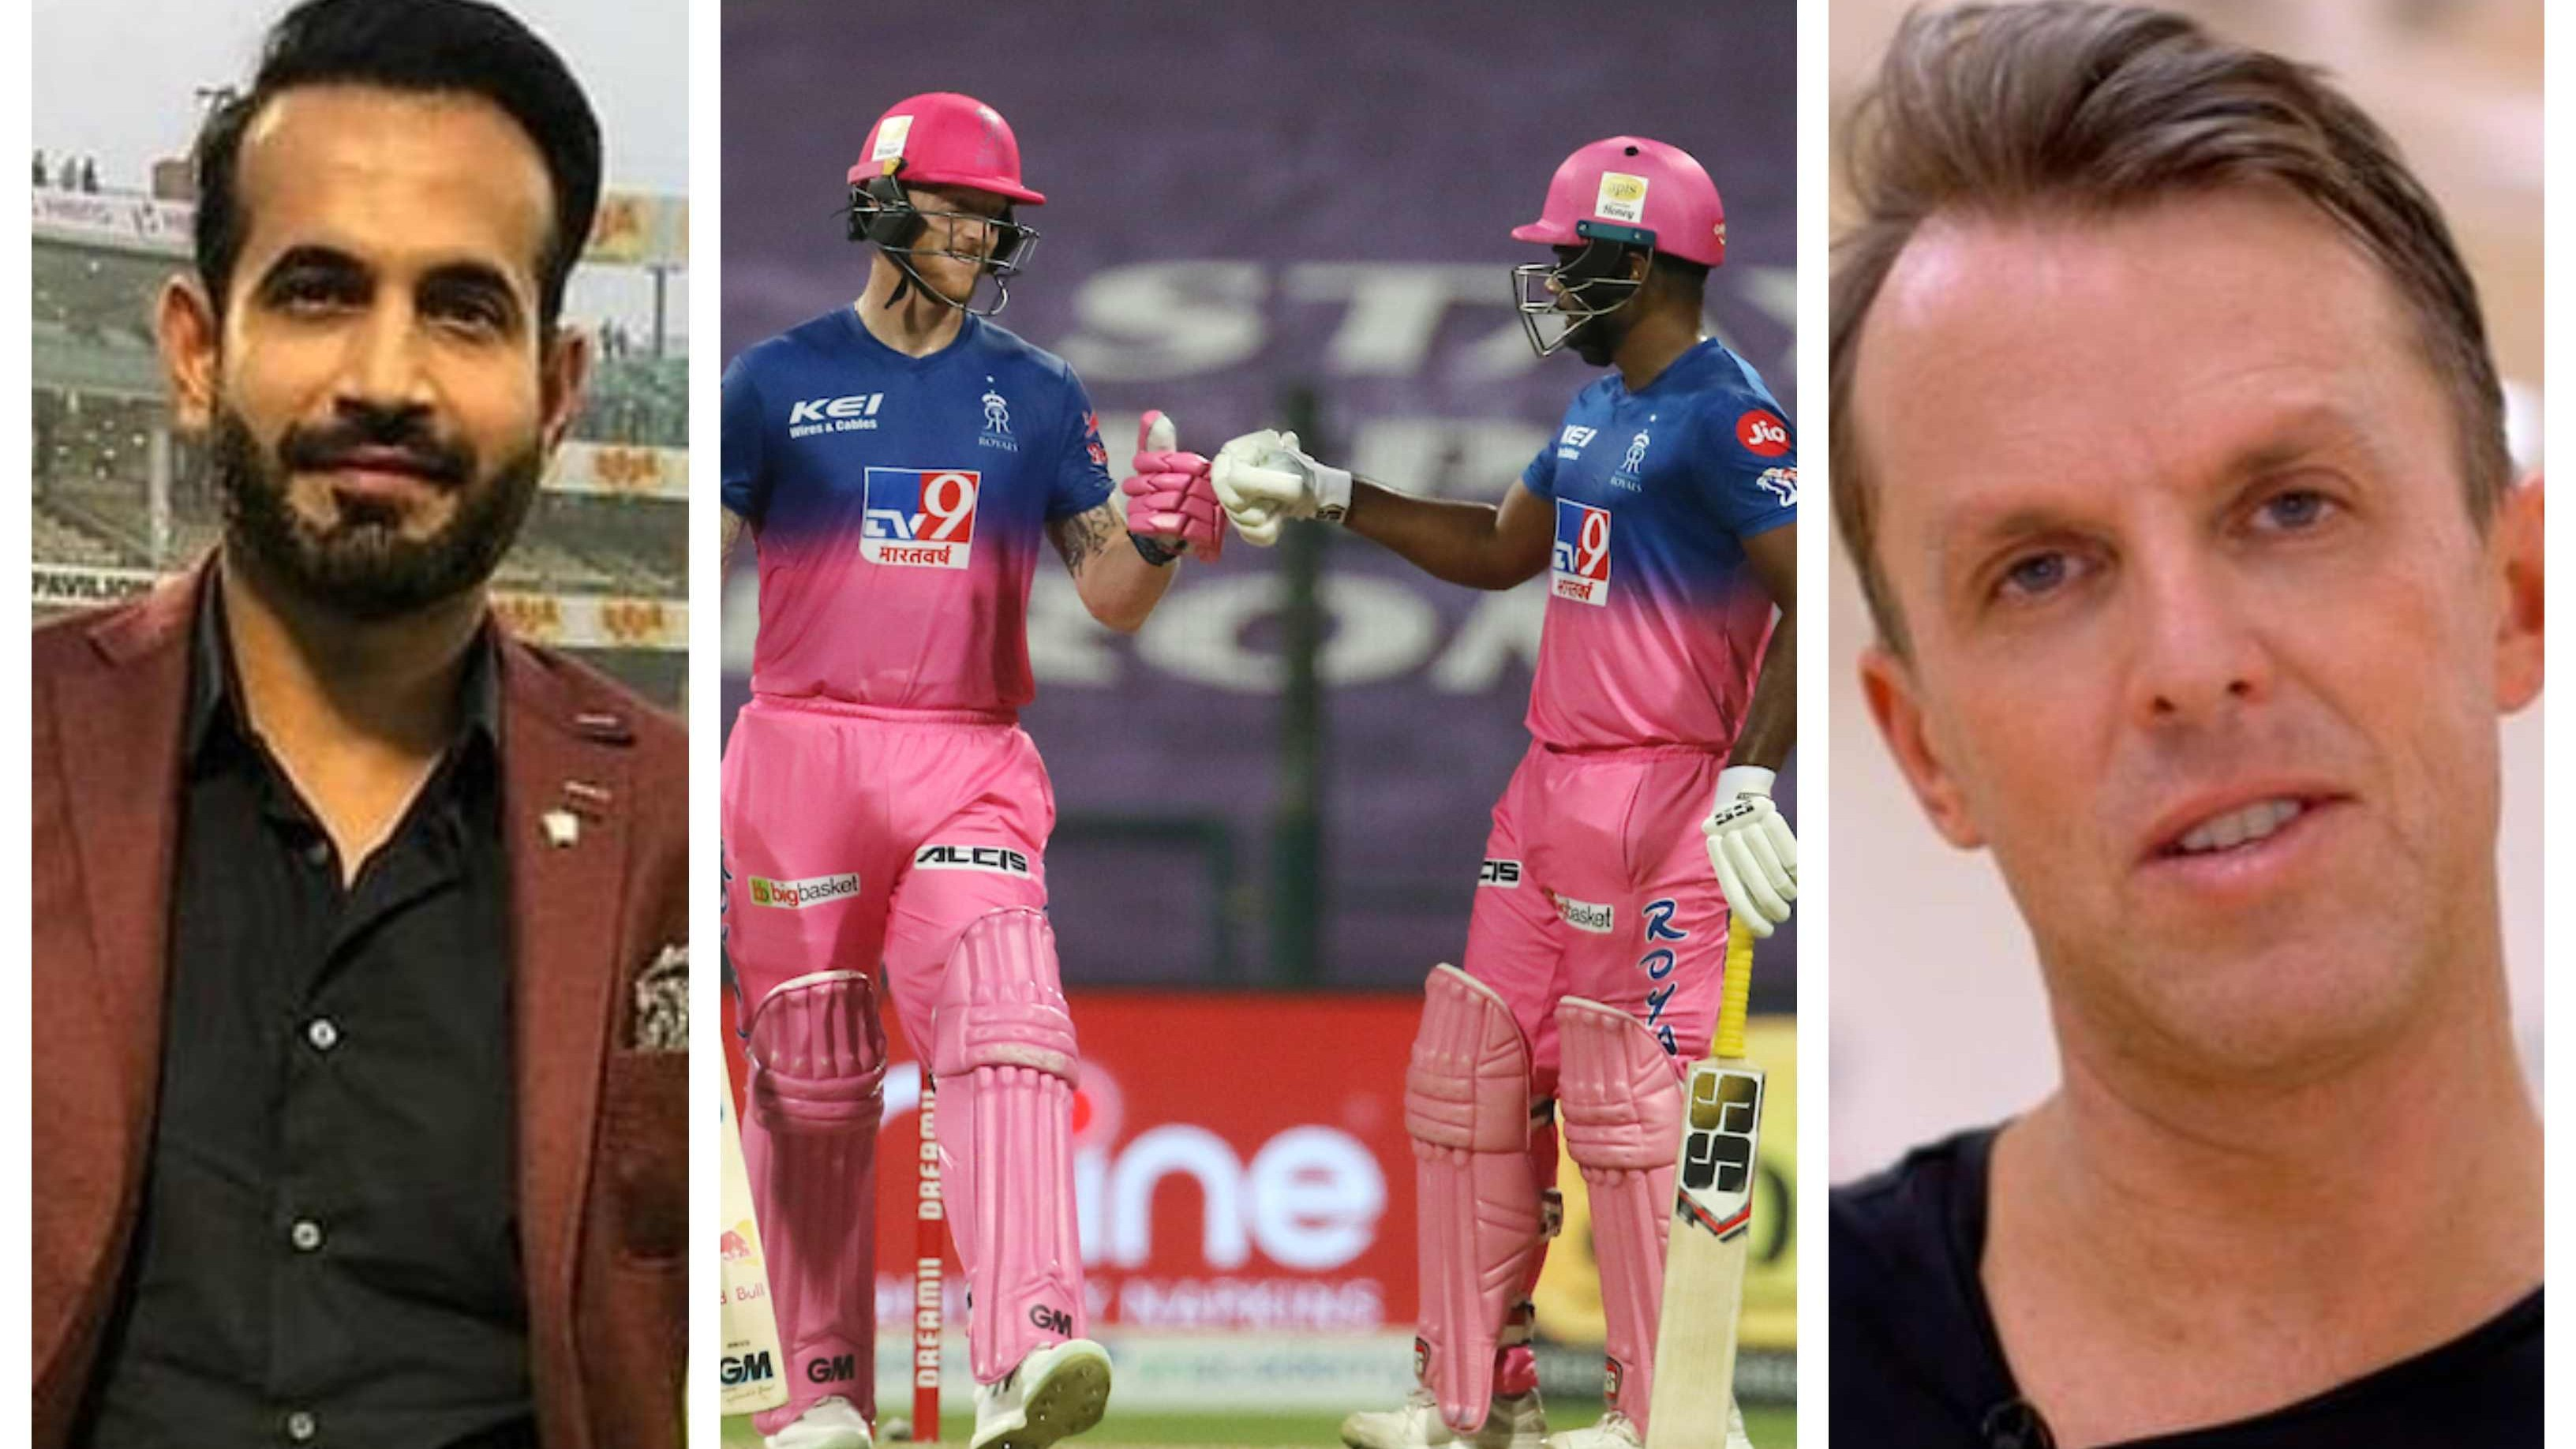 IPL 2020: Cricket fraternity reacts as Stokes, Samson power RR to 7-wicket win while chasing KXIP's 185